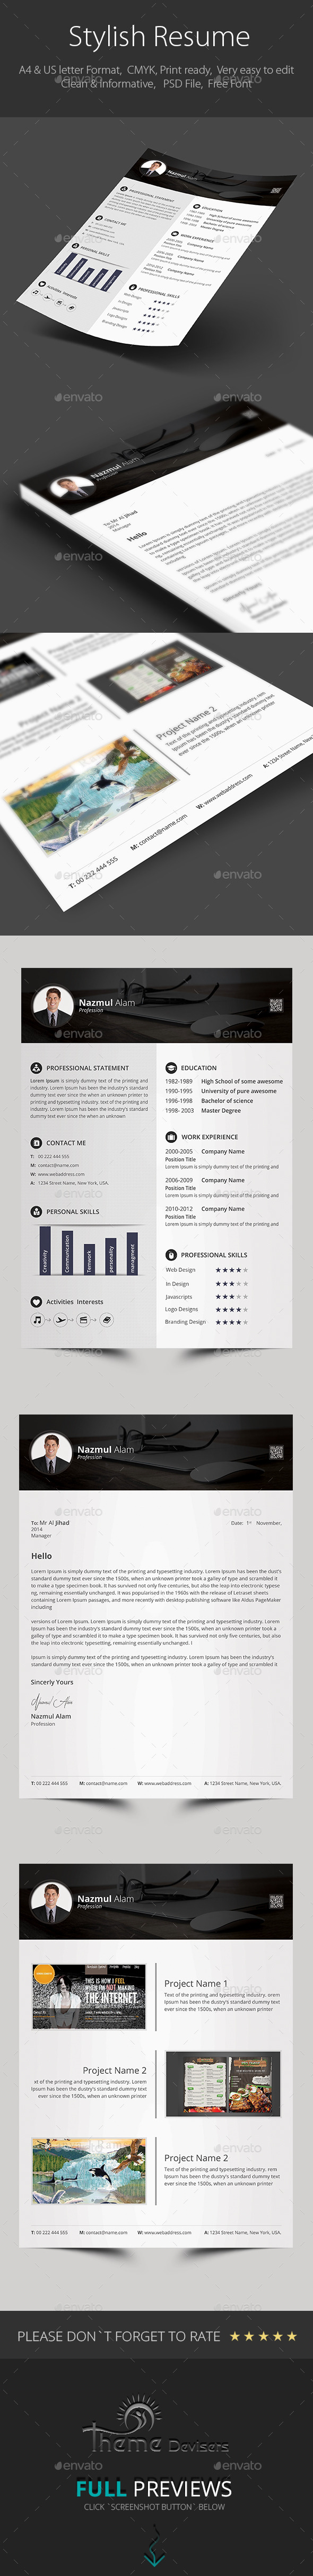 GraphicRiver Stylish Resume 9369256